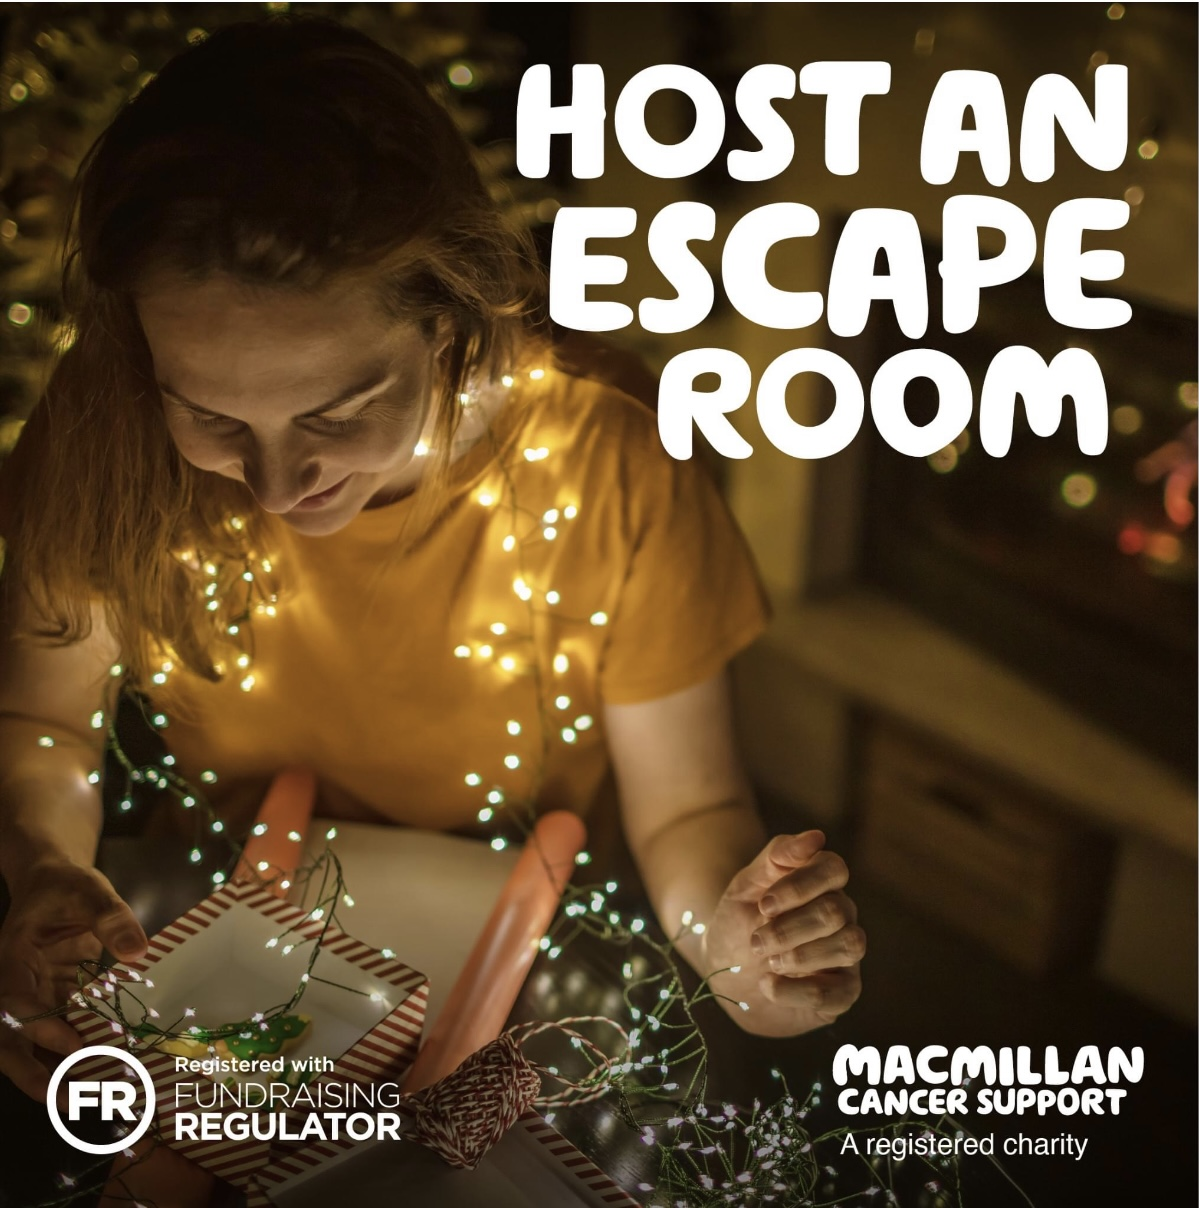 Host an Escape Room